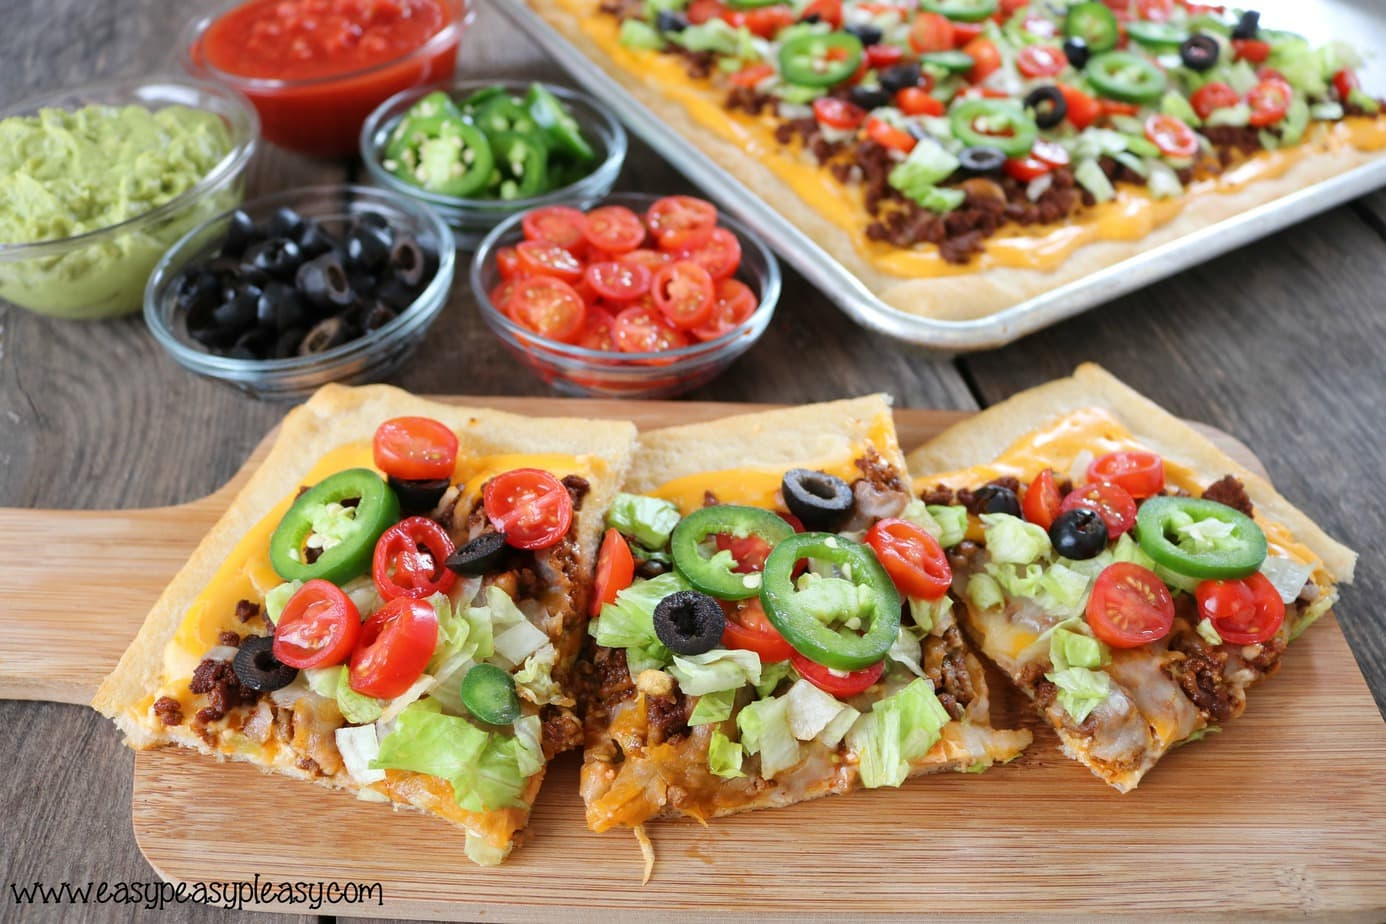 Grab a slice of the ultimate Sheet Pan Taco pizza.